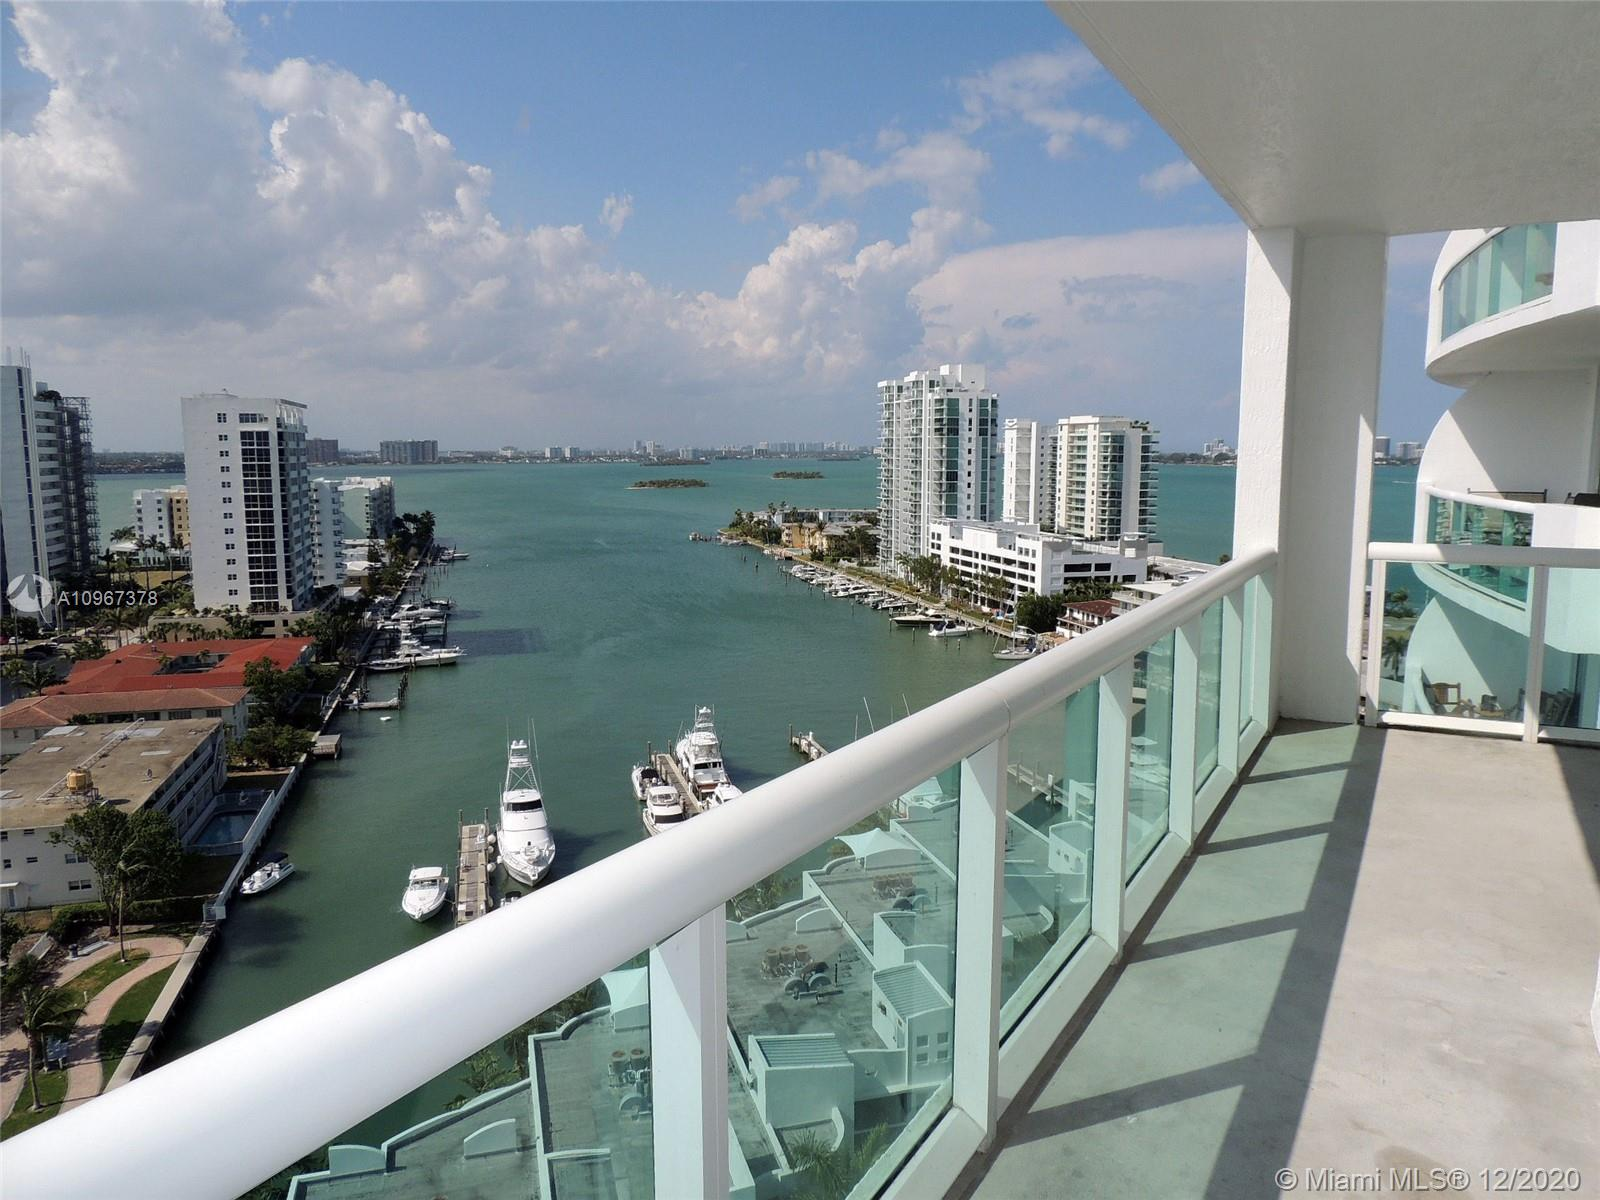 MIAMI LIVING AT IT'S FINEST!! INCREDIBLY SPACIOUS 2 BED /2 BATH UNIT TUCKED AWAY IN BEAUTIFUL NORTH BAY VILLAGE & ONLY MINUTES TO THE BEACH & ALL MAJOR HIGHWAYS!! THIS SPECTACULAR LOWER PENTHOUSE UNIT BOASTS 1,223 SQFT WITH ALL TILE FLOORS, SPLIT FLOORPLAN WITH AMAZING NATURAL LIGHT & LARGE WALK-IN CLOSETS!! UNIT IS VERY CLEAN & FRESHLY PAINTED; KITCHEN HAS GRANITE COUNTERS, STAINLESS STEEL APPLIANCES & PLENTY OF CABINET SPACE + WASHER/DRYER IN THE UNIT! HUGE, NORTH/WEST FACING BALCONY WITH SWEEPING WIDE BAY VIEWS MAKES FOR AMAZING OUTDOOR LIVING!! PET FRIENDLY BUILDING UP TO 25LBS + BASIC CABLE INCLUDED + 1 ASSIGNED/COVERED PARKING SPACE!! WILL NOT LAST, EASY TO SHOW!!